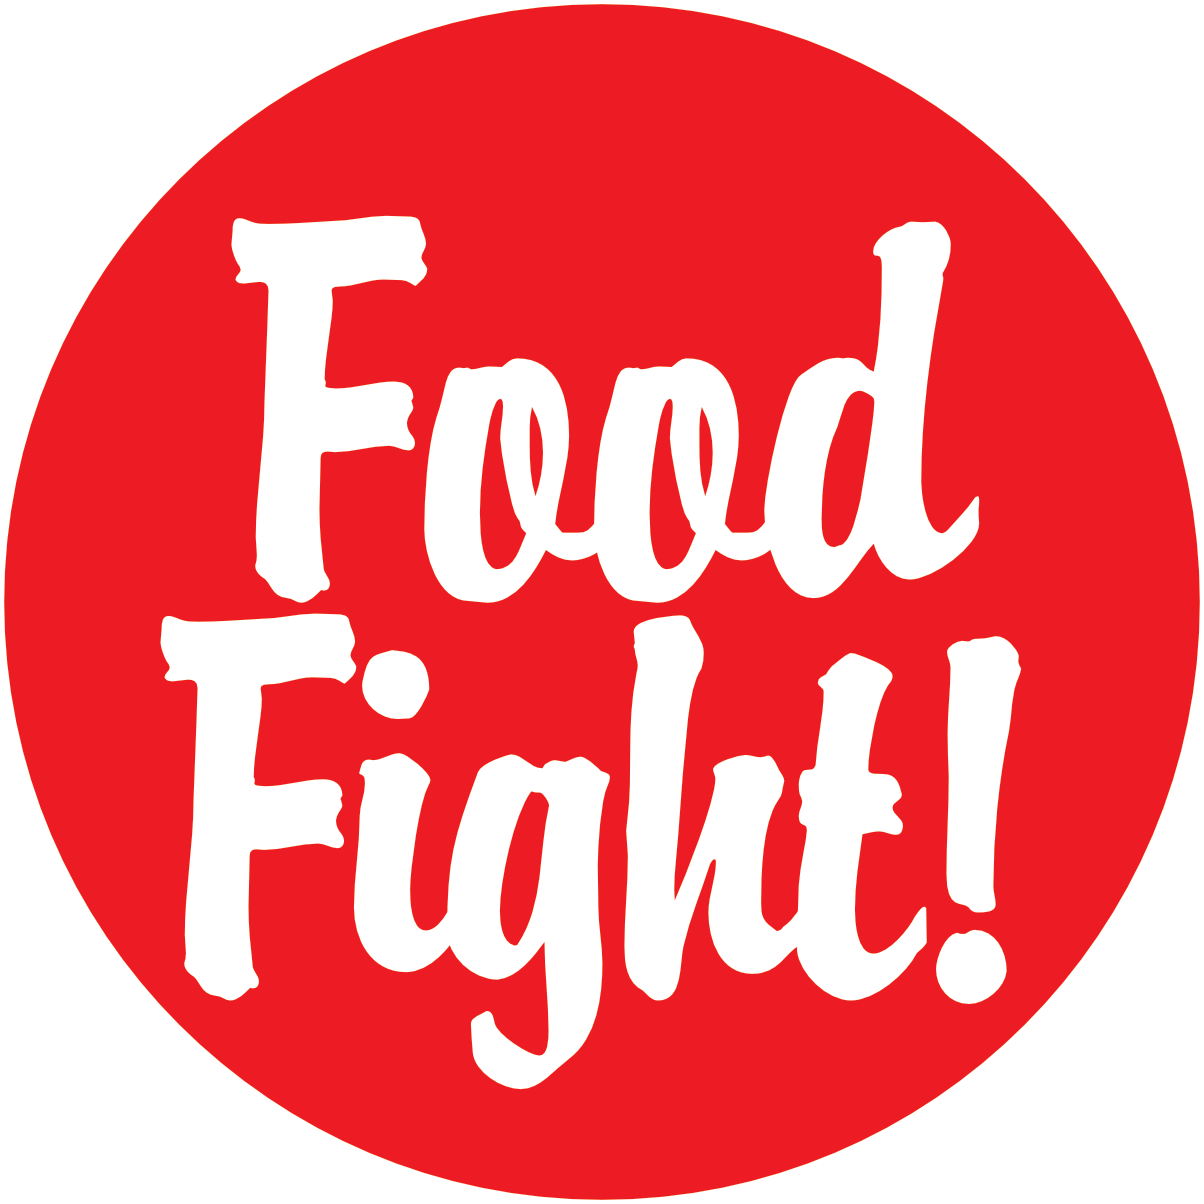 Food Fight! Grocery image 0